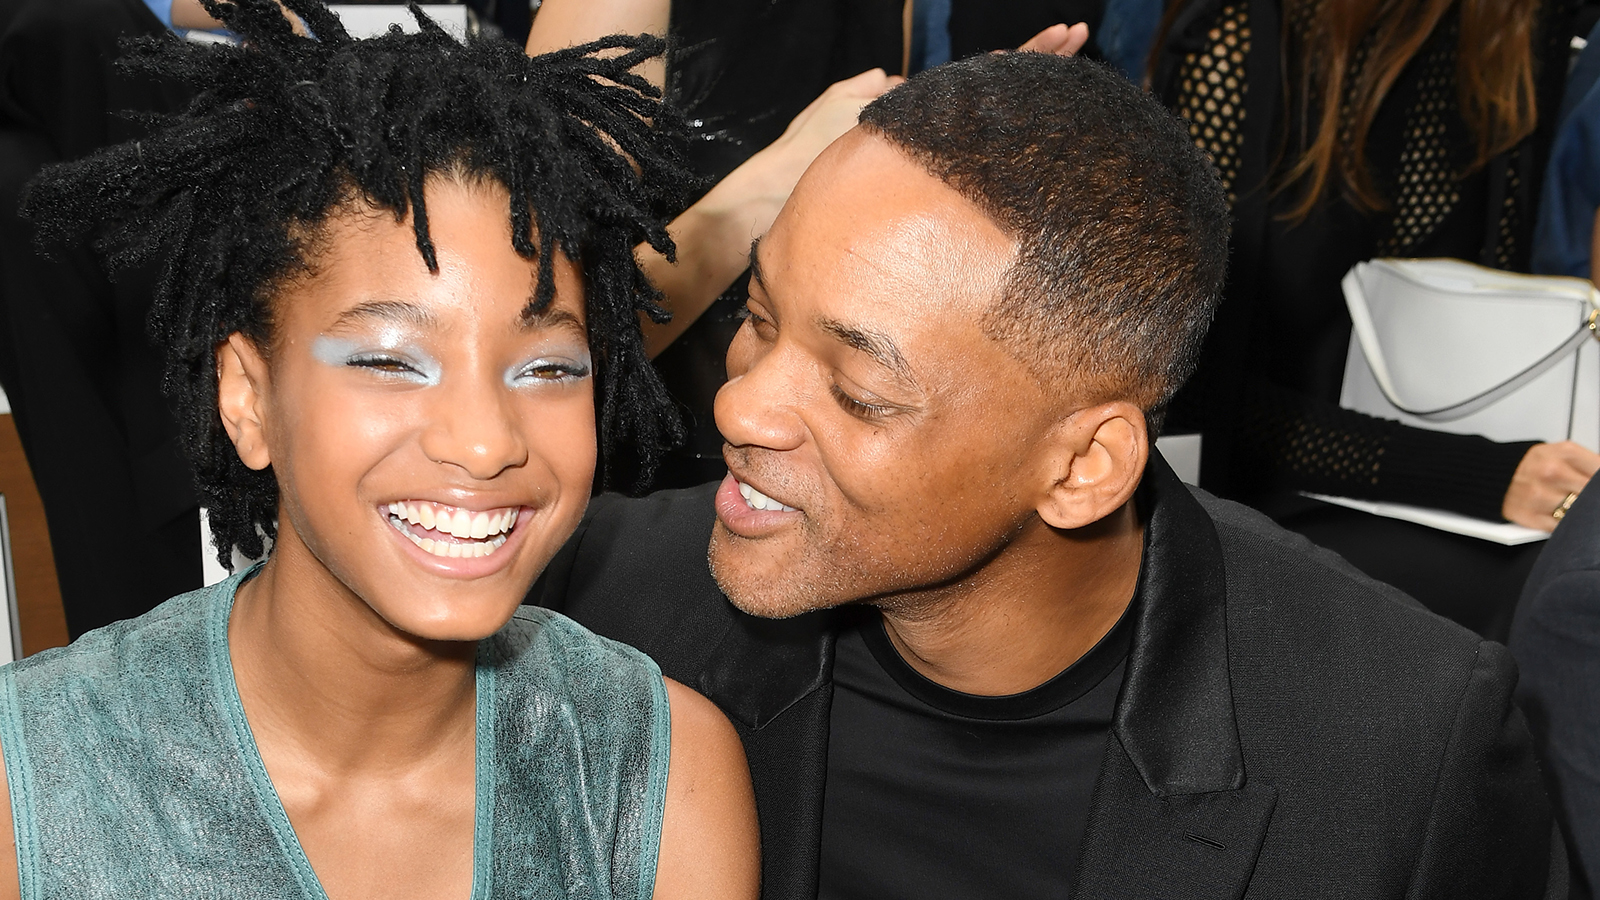 Will-Smith-Shares-A-TBT-Video-Of-Daughter-Willow-Conquering-Her-Ballet-Class-Fears